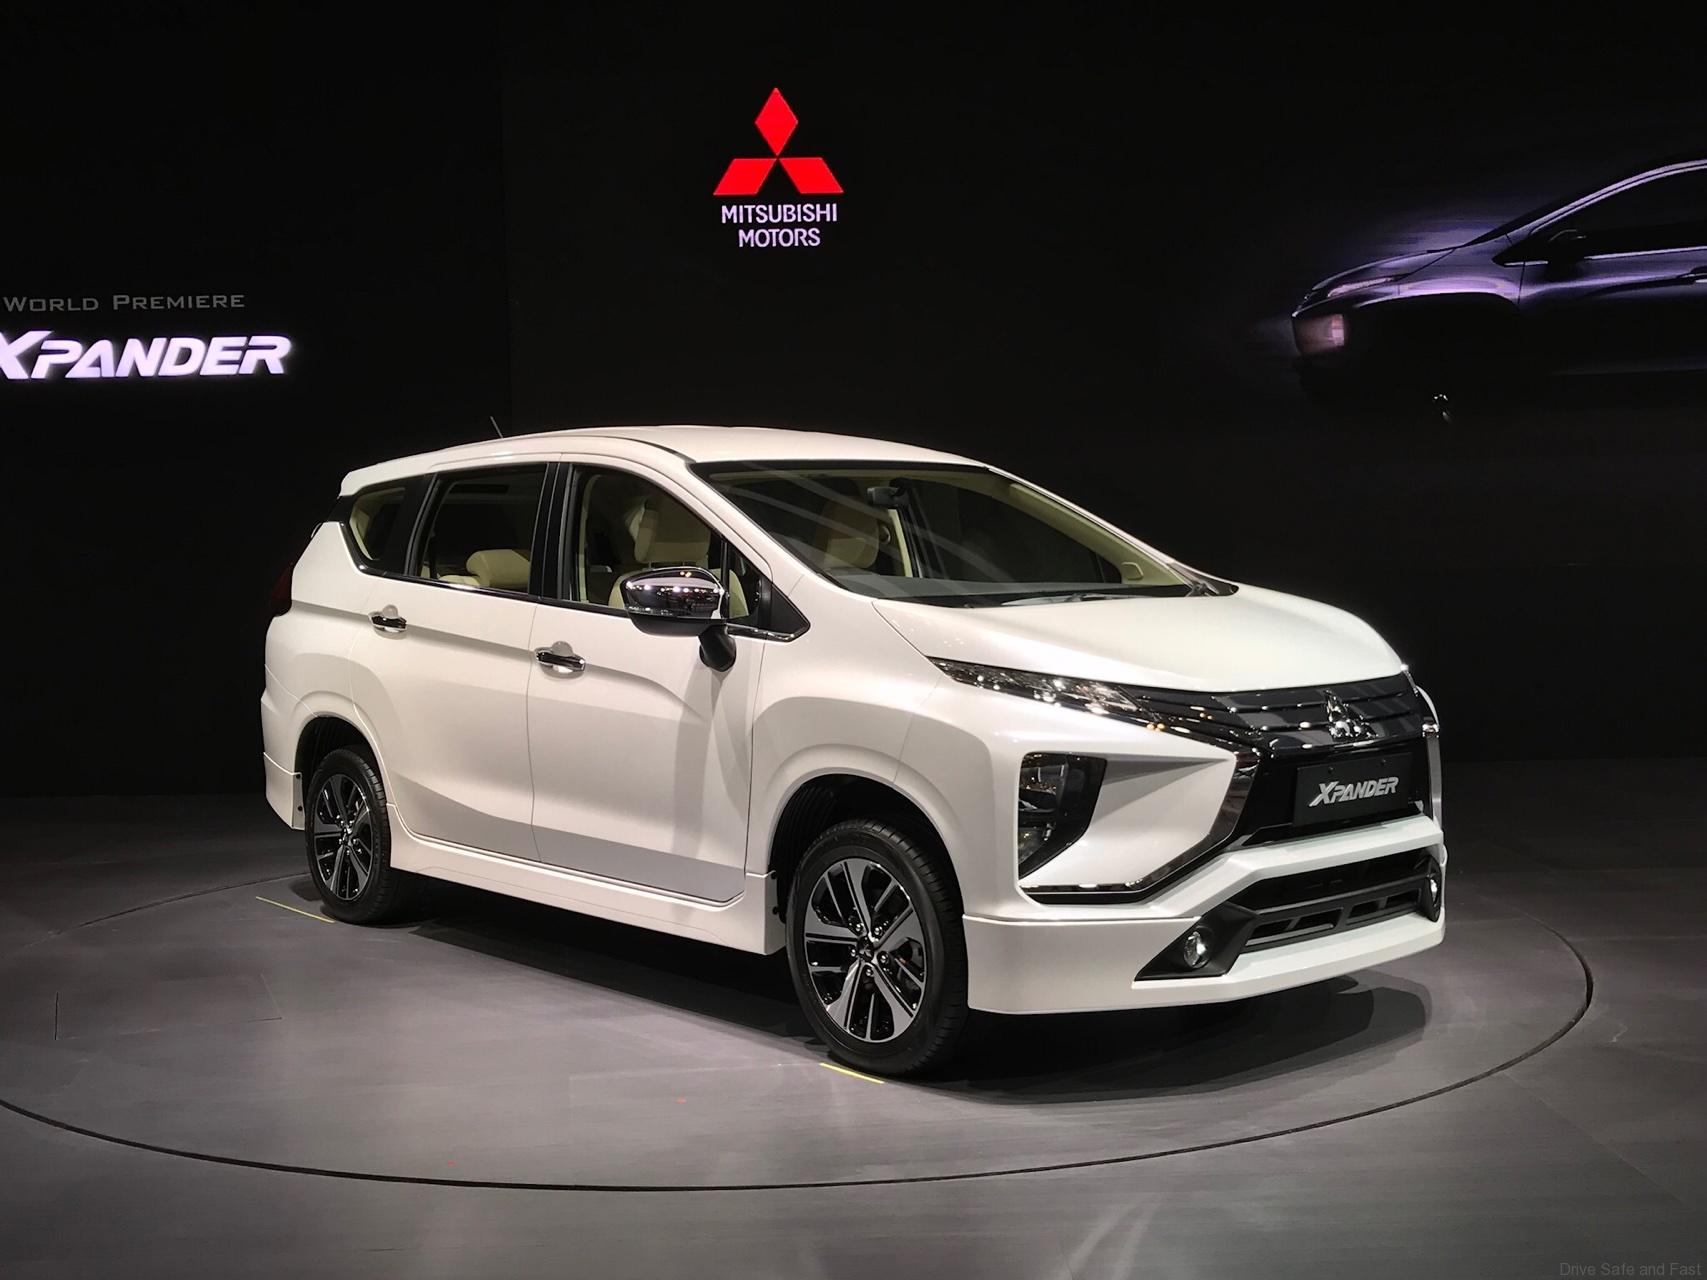 Mitsubishi S Xpander Is A Blend Of Sharp Looks And Space